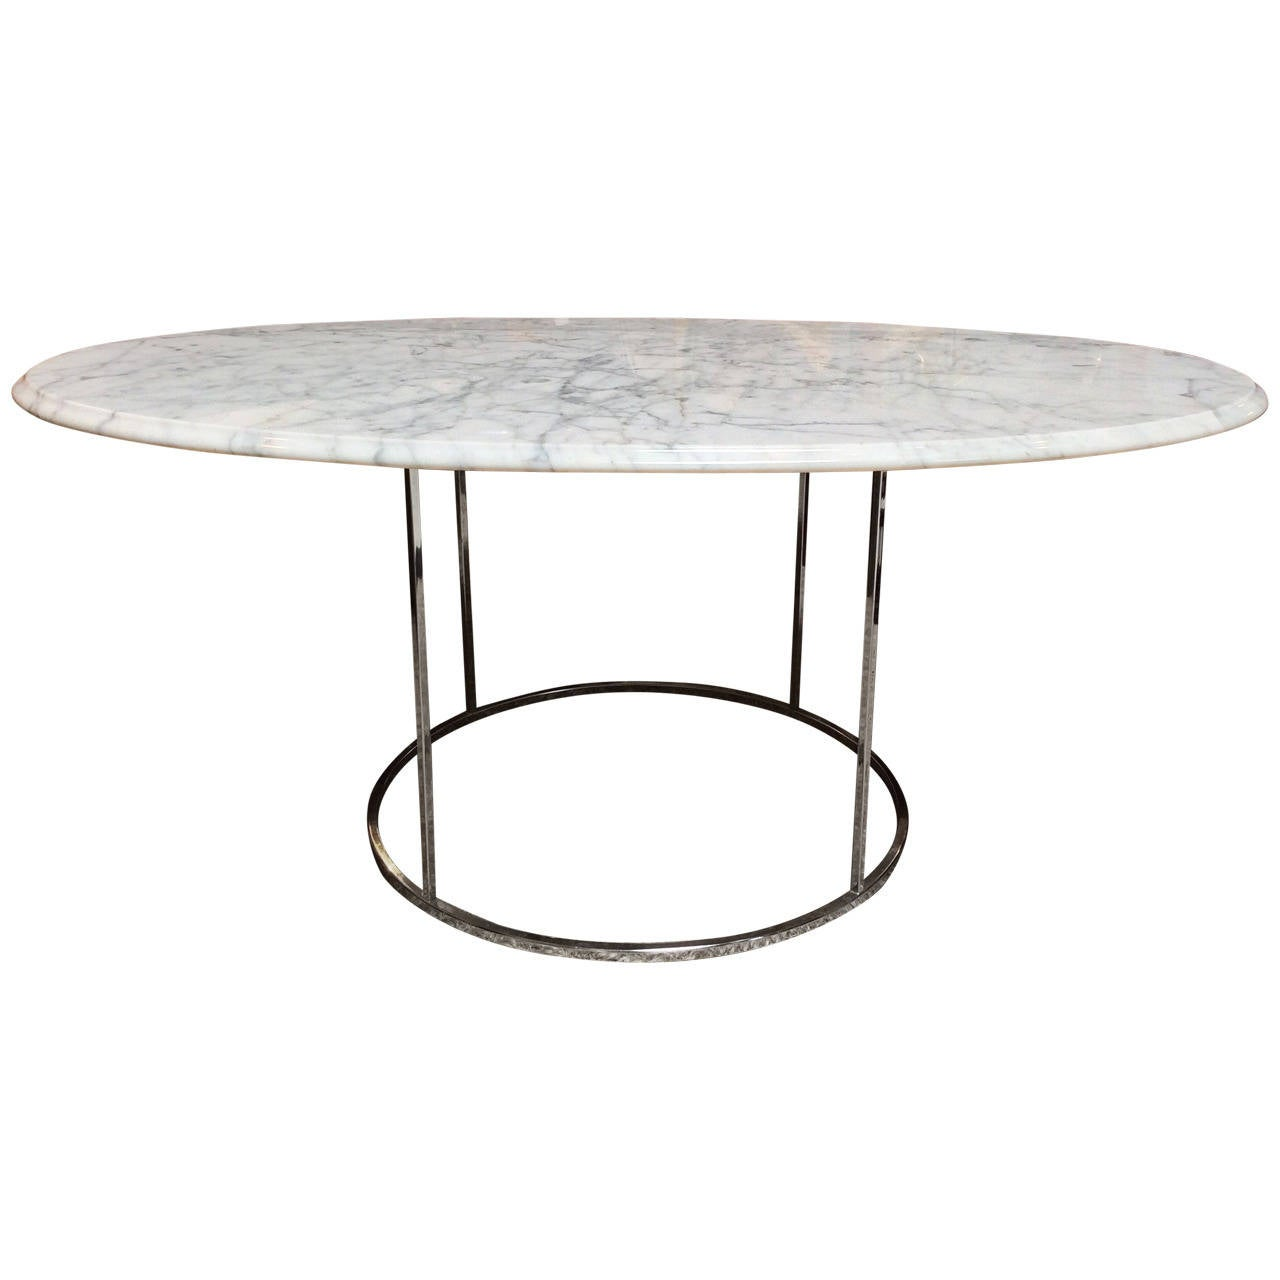 Marble And Chrome Coffee Table: Carrera Marble And Chrome Cocktail Coffee Table In The